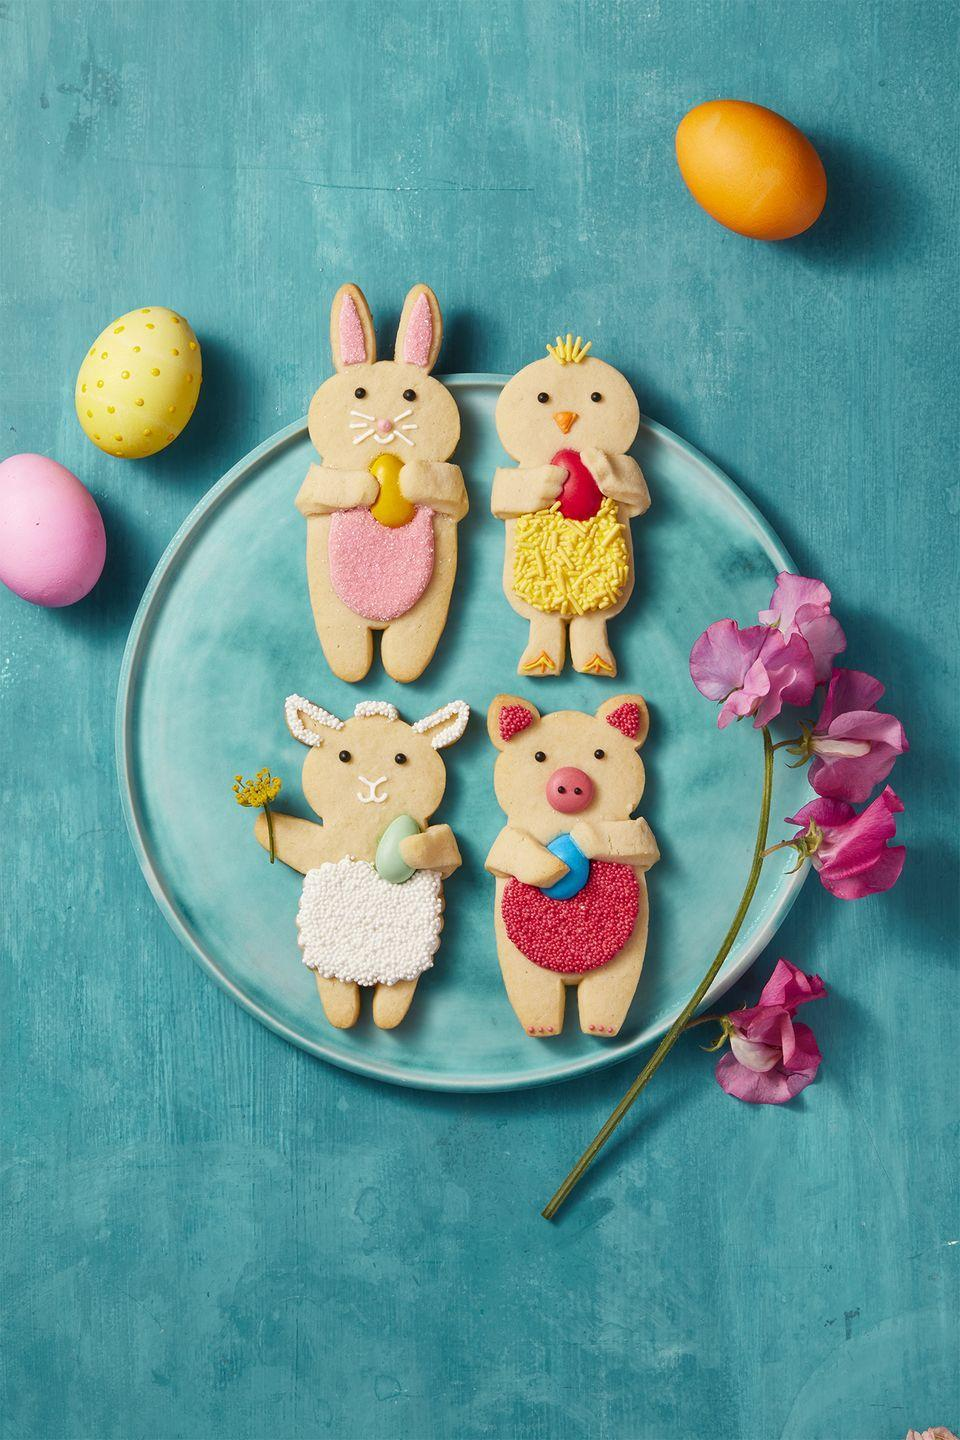 "<p>Can't decide between bunny, chick, sheep, or pig-shaped treats? Make 'em all for a dessert table full of spring's finest!</p><p><em><a href=""https://www.goodhousekeeping.com/food-recipes/a41691/vanilla-sugar-dough-recipe/"" rel=""nofollow noopener"" target=""_blank"" data-ylk=""slk:Get the recipe for Easter Vanilla Sugar Cookies »"" class=""link rapid-noclick-resp"">Get the recipe for Easter Vanilla Sugar Cookies »</a></em></p><p><strong>RELATED: </strong><a href=""https://www.goodhousekeeping.com/food-recipes/dessert/g30468803/easy-spring-desserts/"" rel=""nofollow noopener"" target=""_blank"" data-ylk=""slk:55 Spring Desserts Perfect to Celebrate The Season"" class=""link rapid-noclick-resp"">55 Spring Desserts Perfect to Celebrate The Season</a></p>"